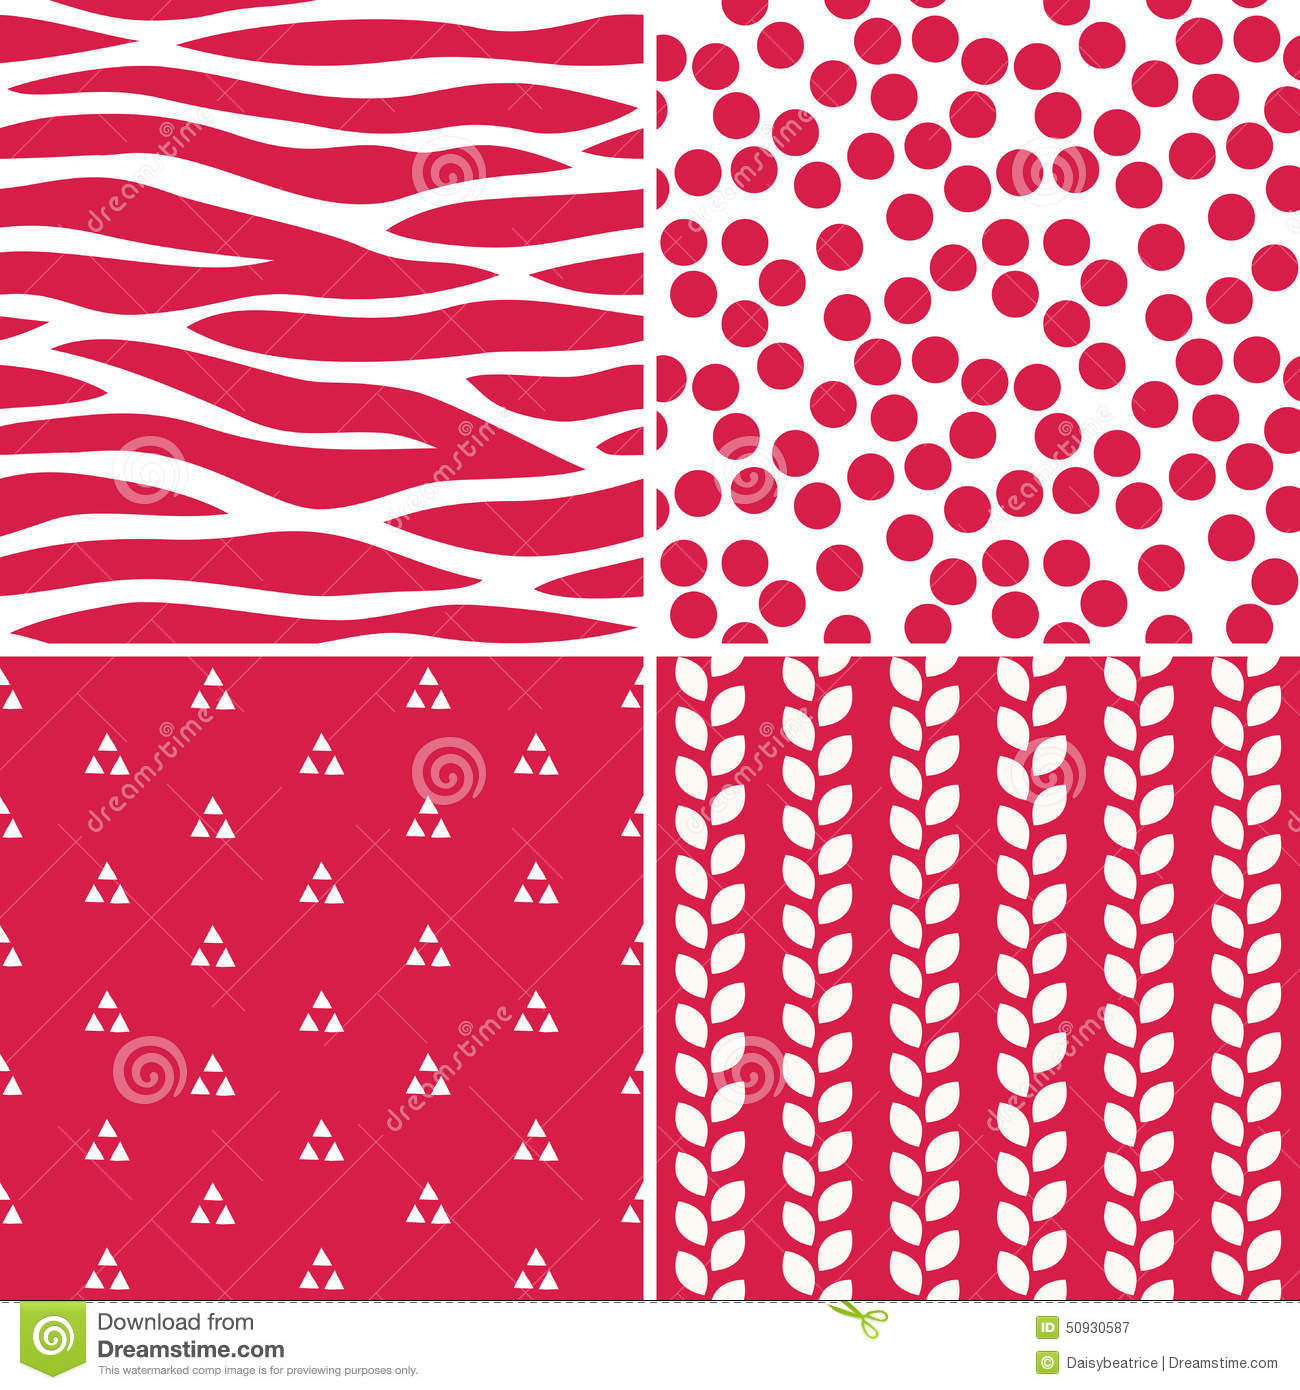 Fun Seamless Red And White Patterns Stock Vector Illustration Of